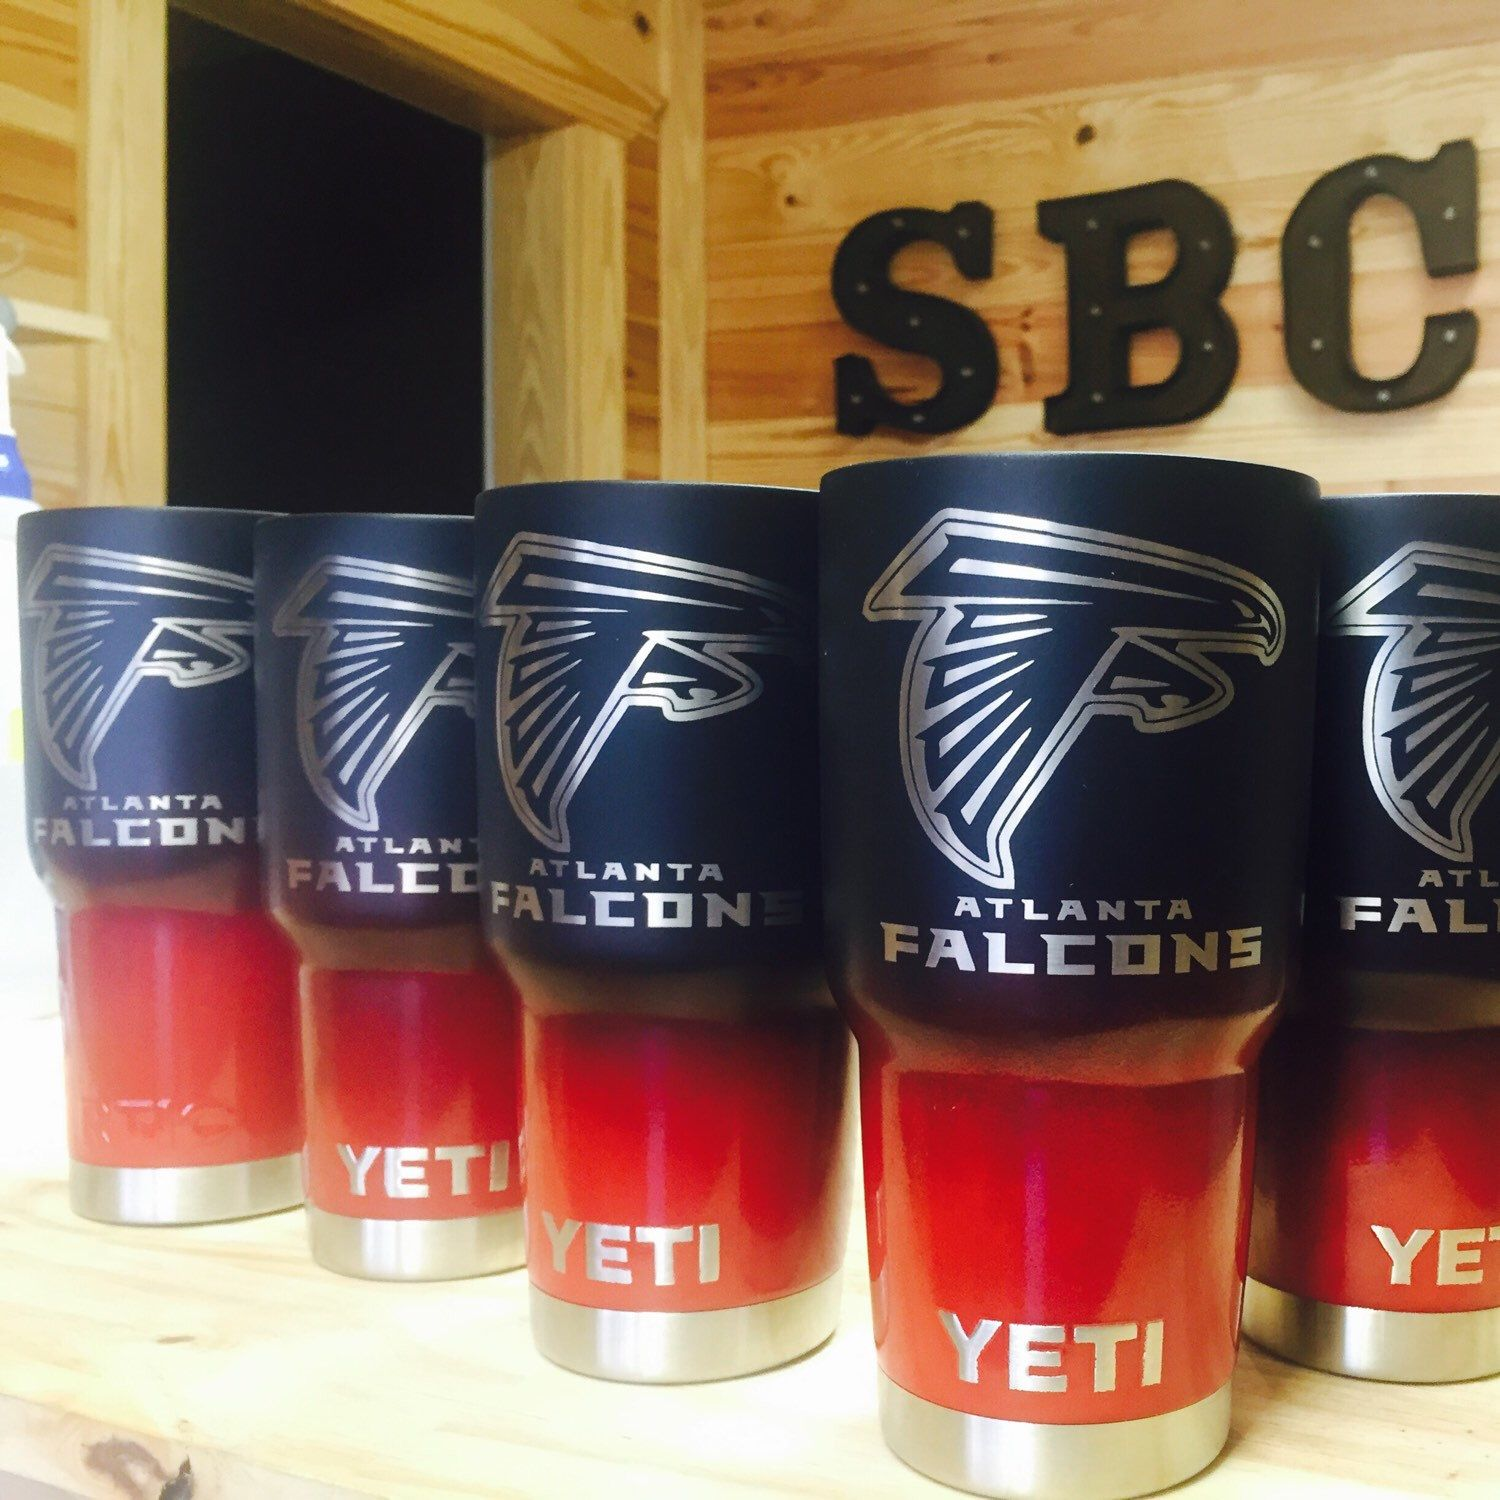 Atlanta Falcons Yetis And Rtics Yeti Cup Designs Christmas Cups Cup Design